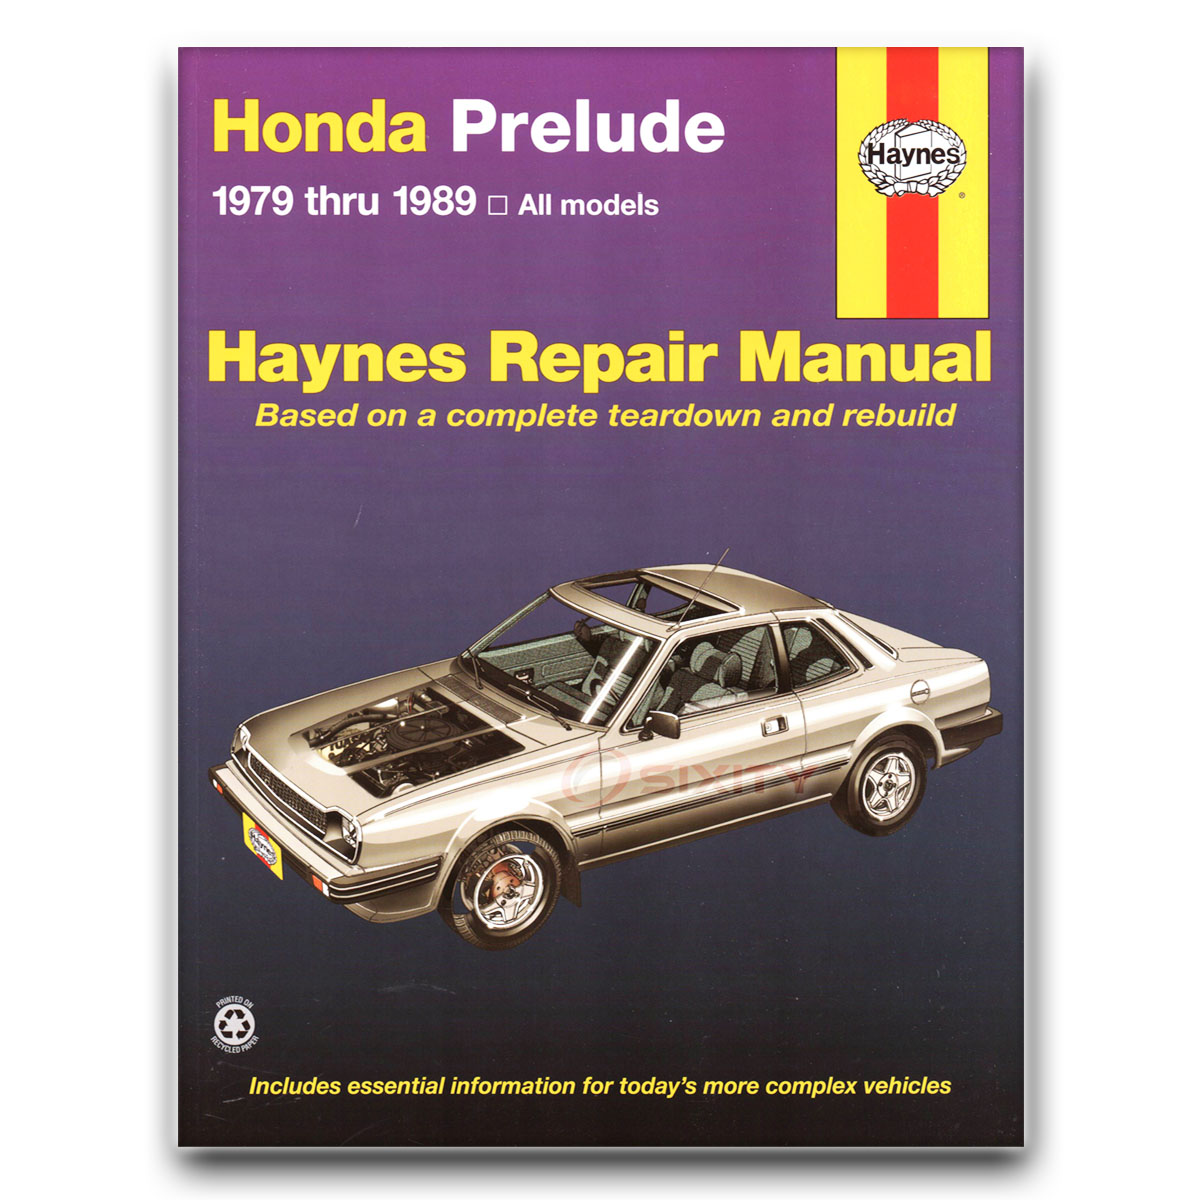 92 prelude repair manual open source user manual u2022 rh dramatic varieties com 1994 honda prelude service manual 93 honda prelude owners manual